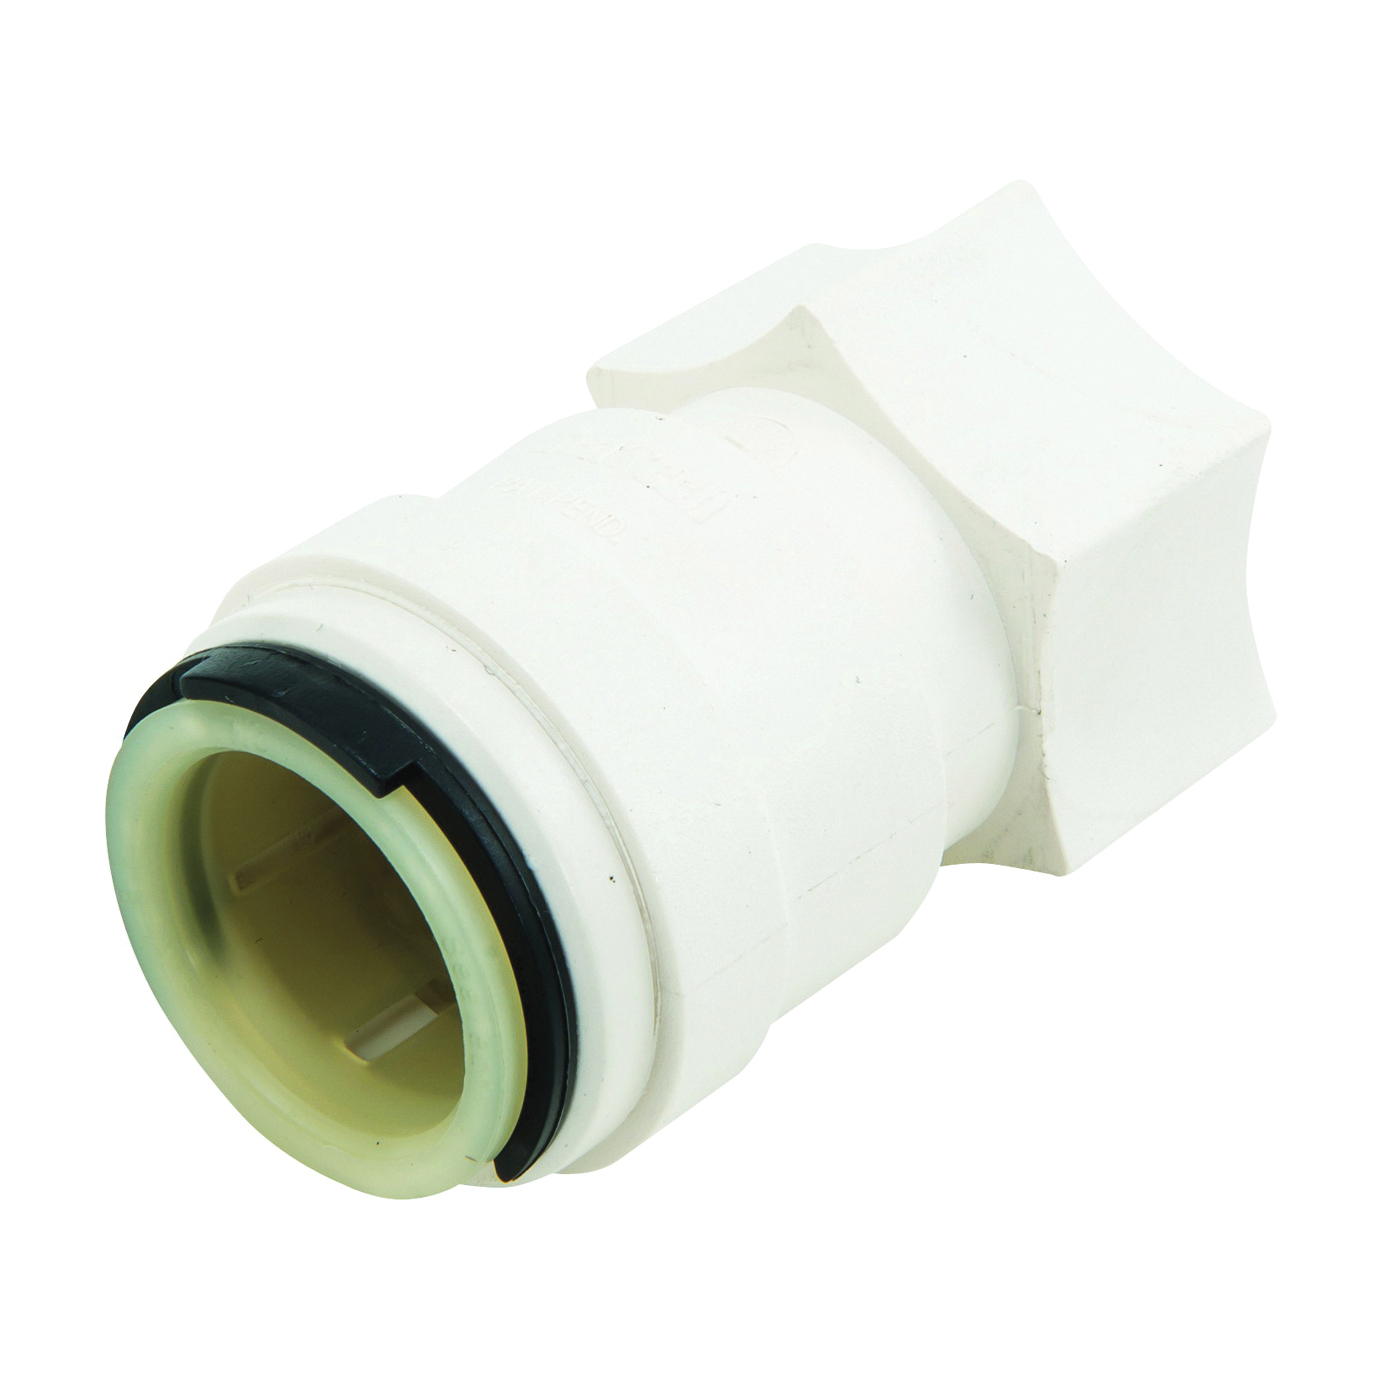 Picture of Watts 35 Series 3510-1416 Drain Trim, 3/4 in CTS, 1 in NPS